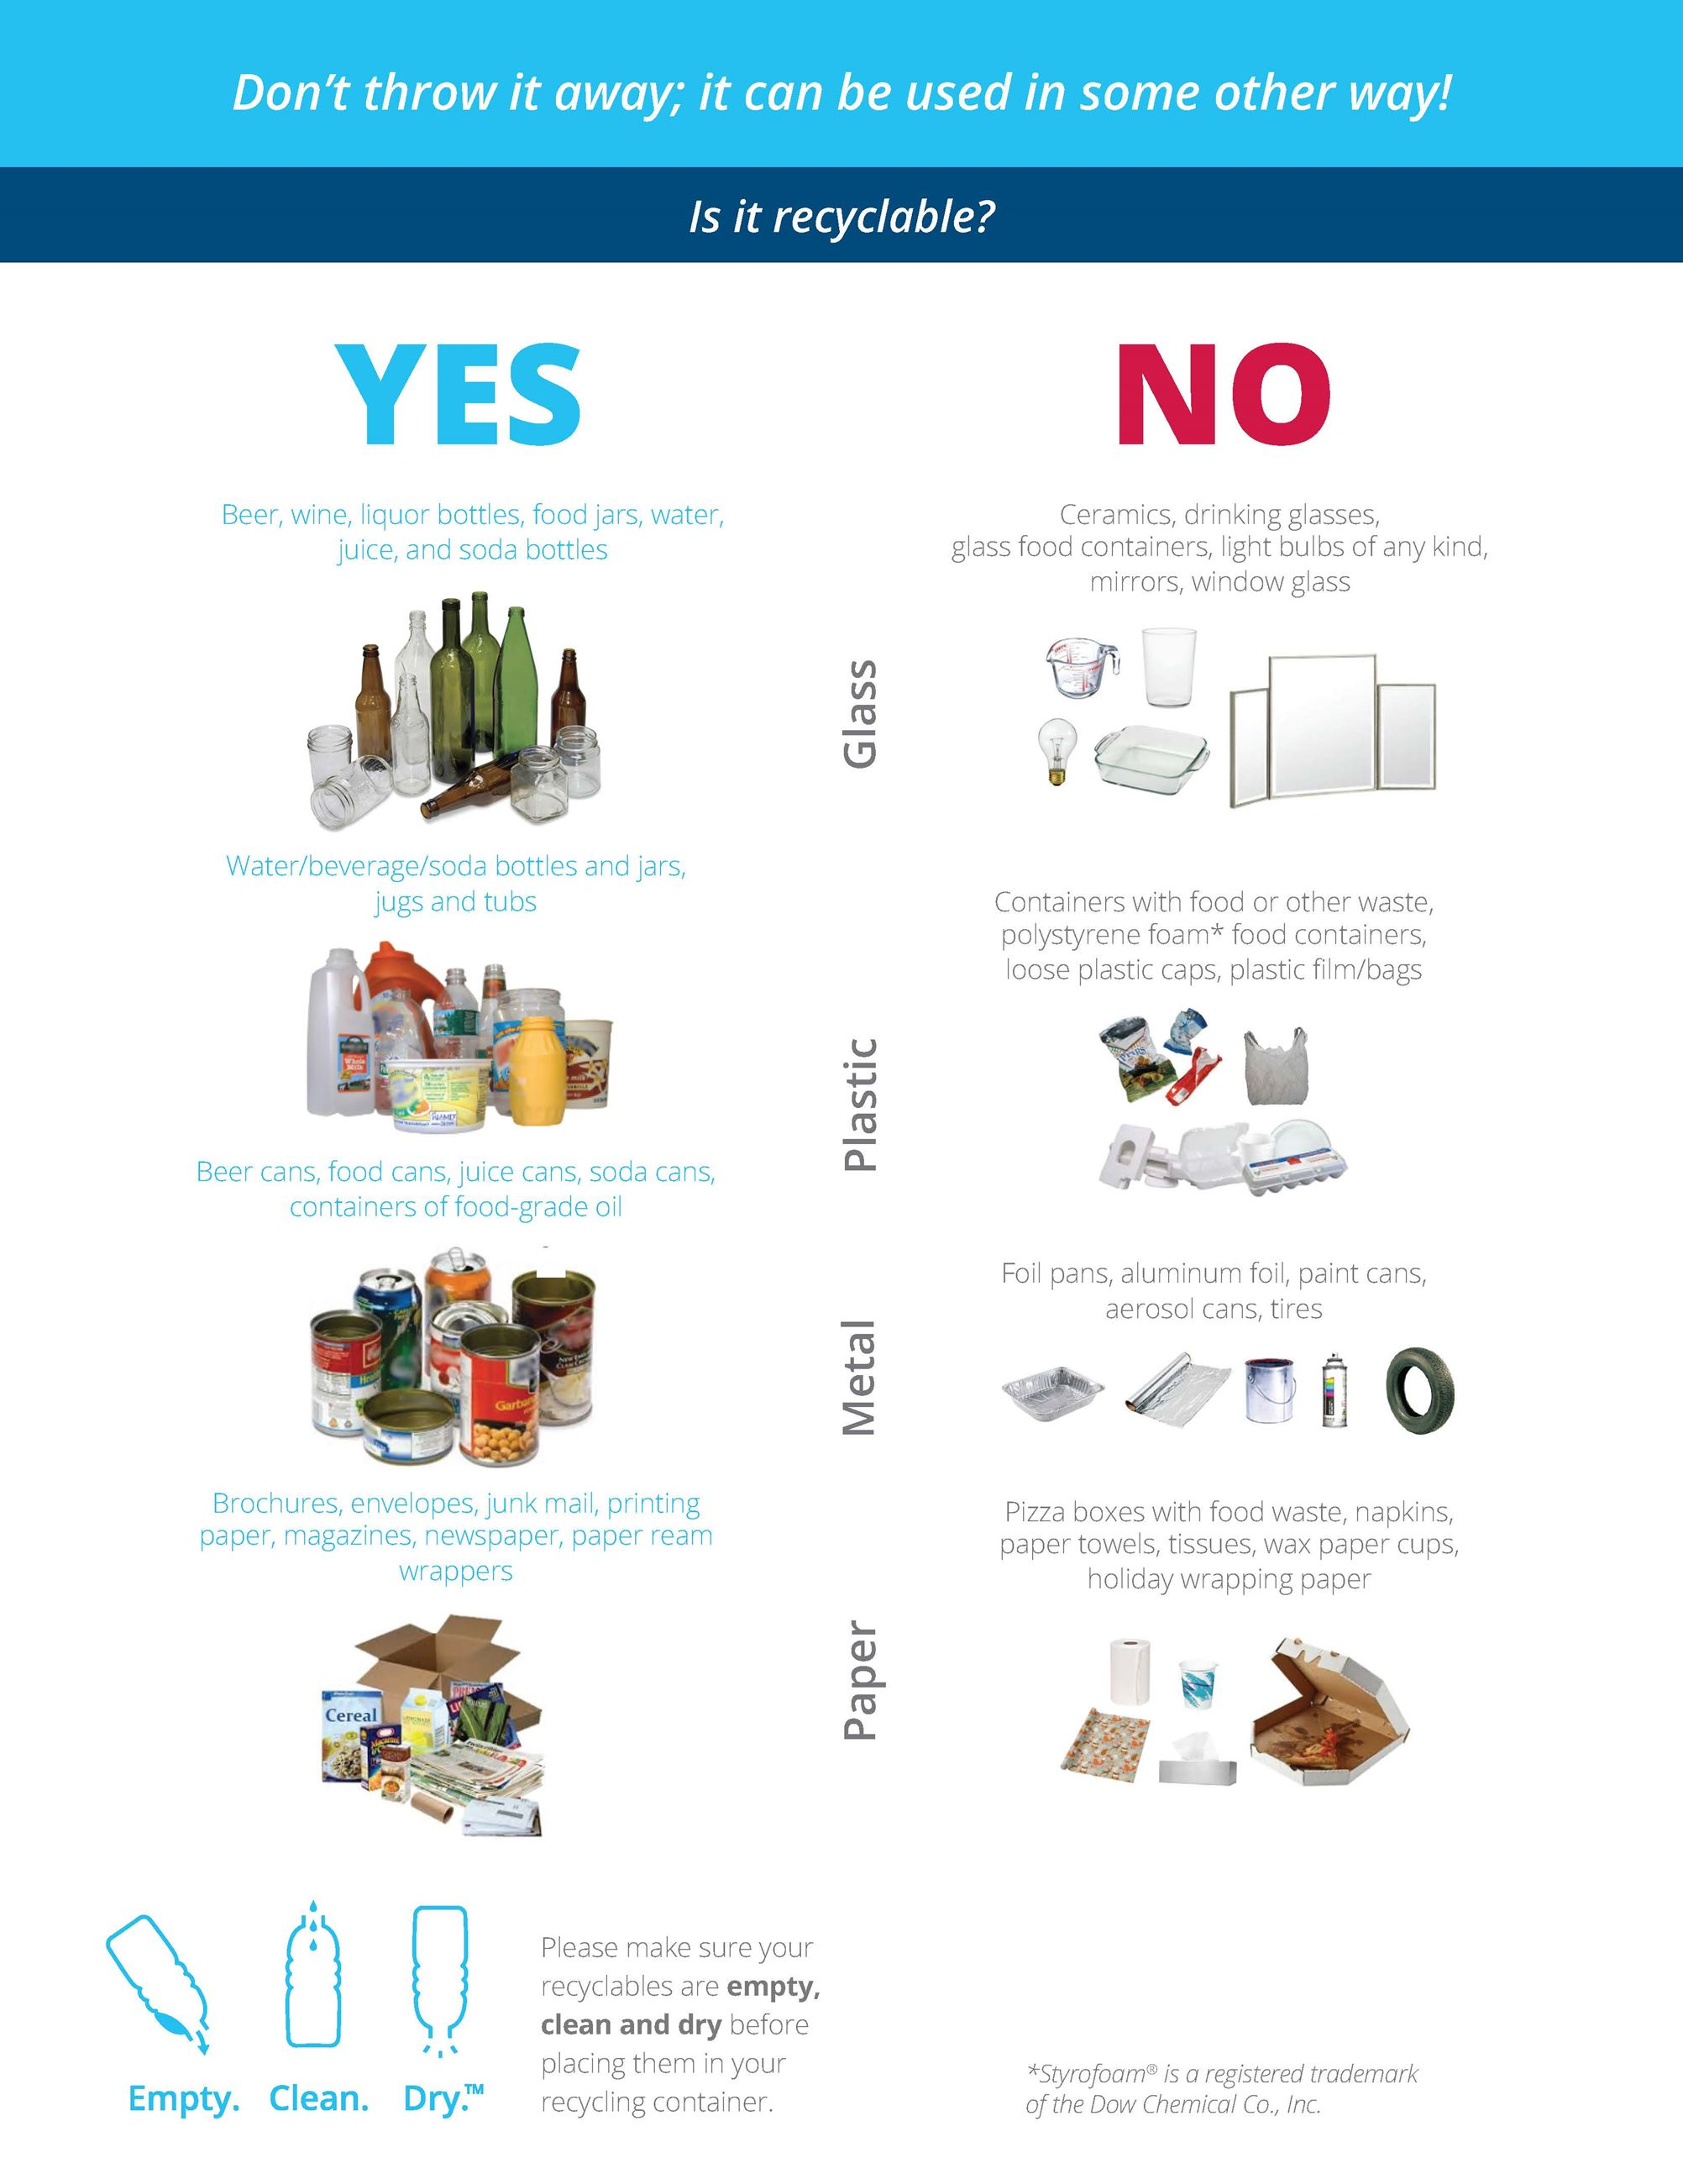 A picture of the cover page of the 2019 List of Acceptable Items for Recycling.